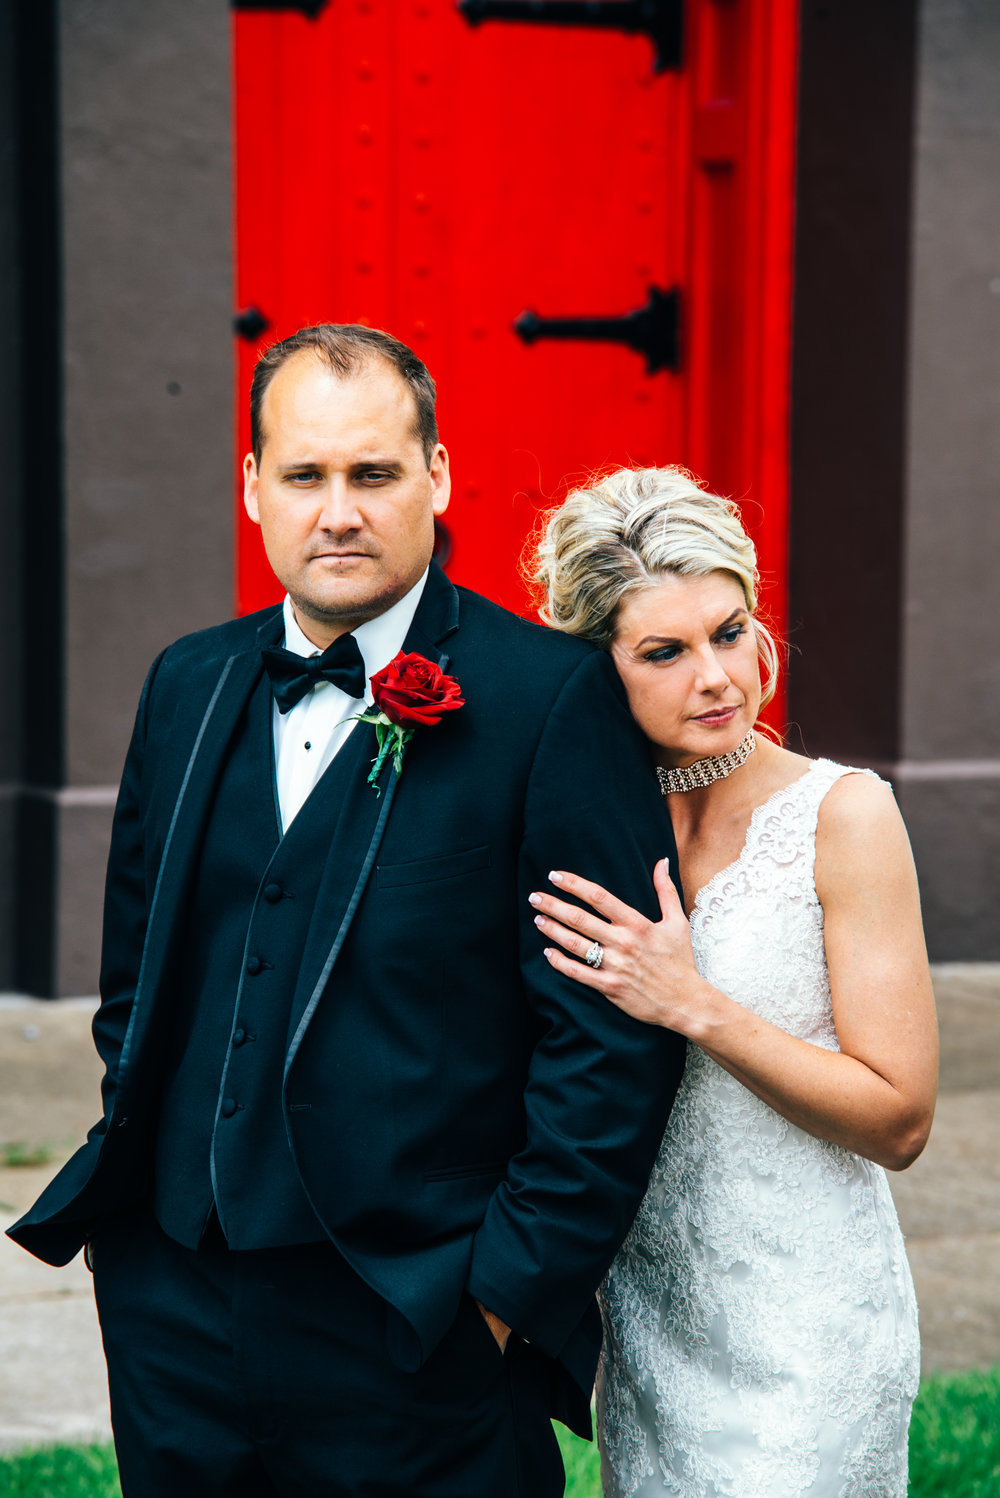 Bride and groom in front of bright red church door